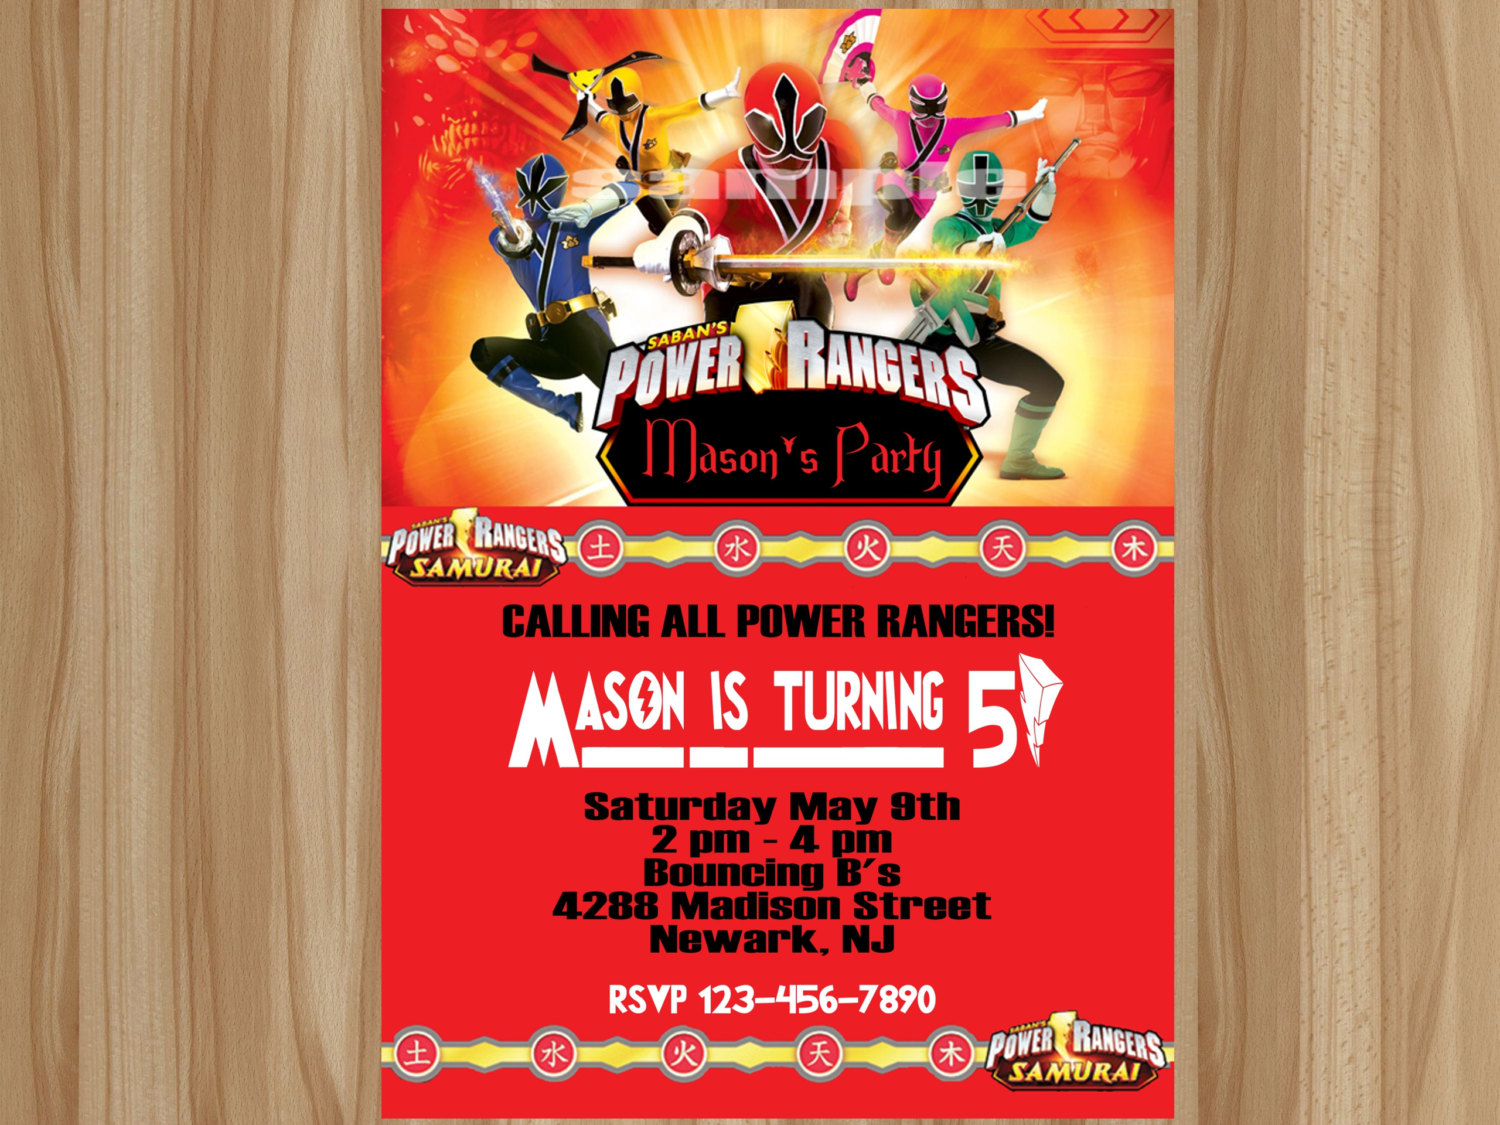 power rangers birthday invitation cards ; power-ranger-birthday-invitations-by-way-of-using-an-impressive-design-concept-for-your-appealing-Birthday-Invitation-Templates-12